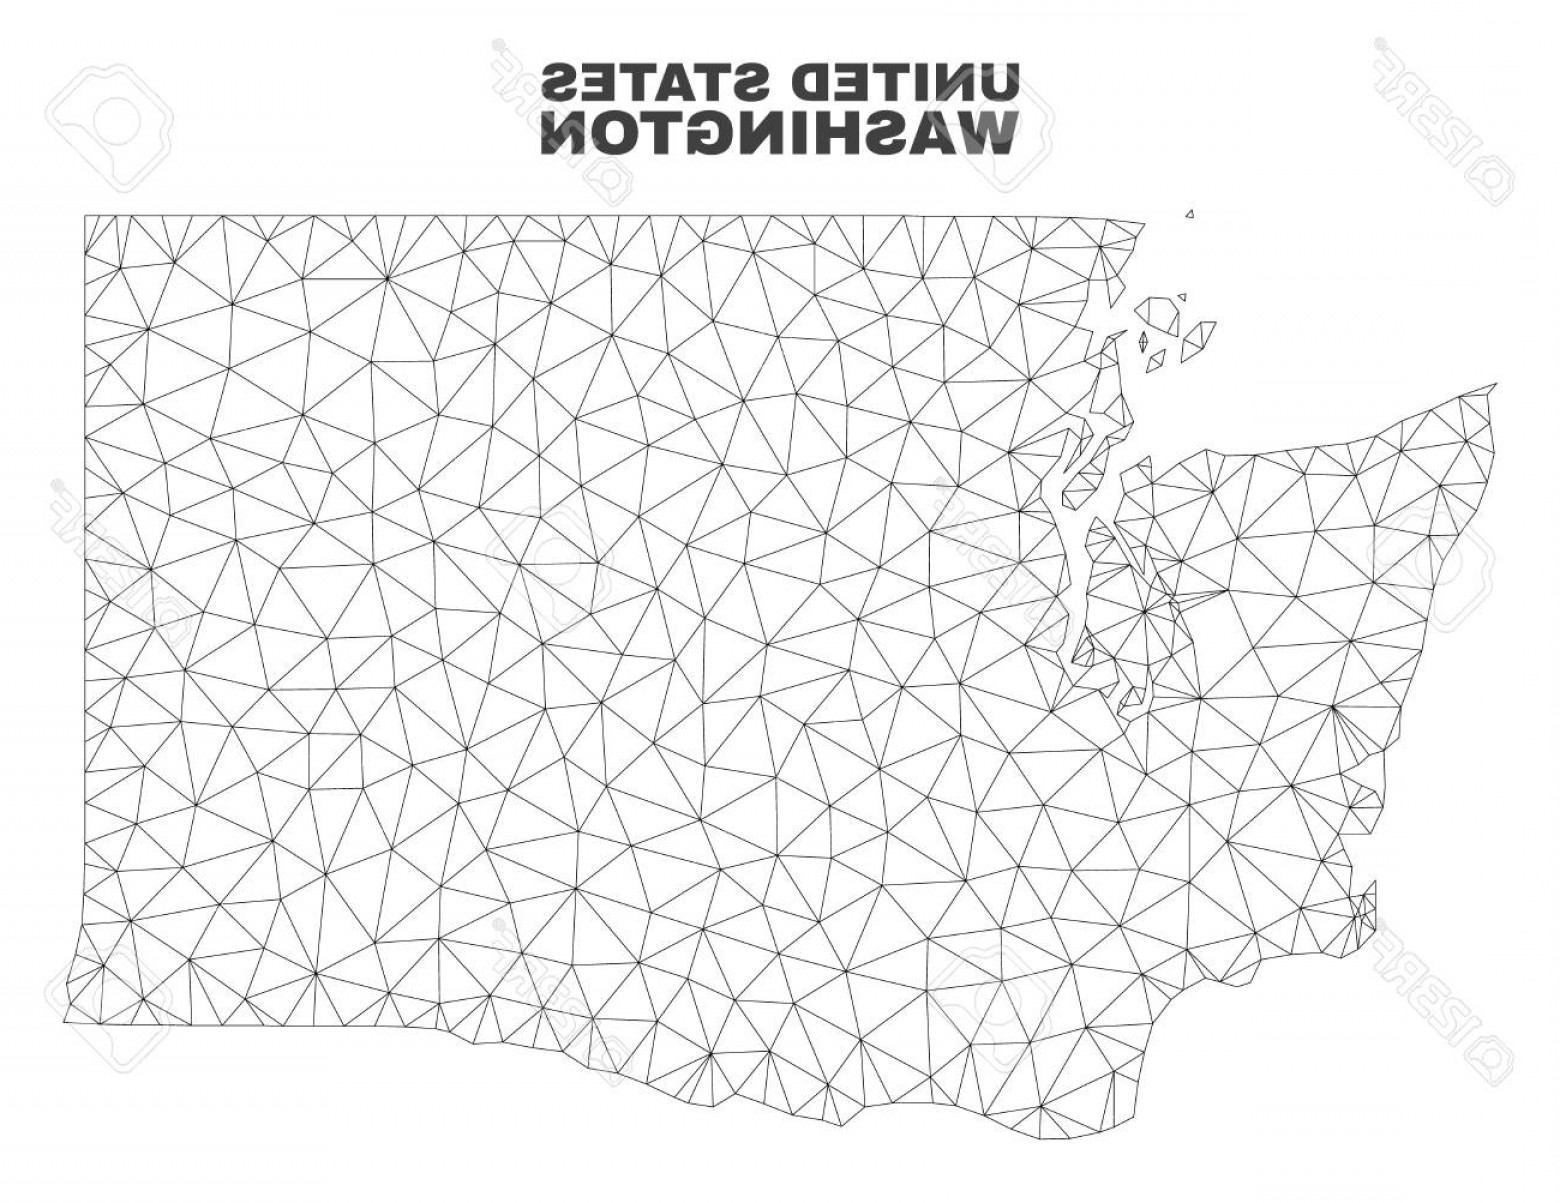 Washington State Map Vector: Photostock Vector Abstract Washington State Map Isolated On A White Background Triangular Mesh Model In Black Color Of